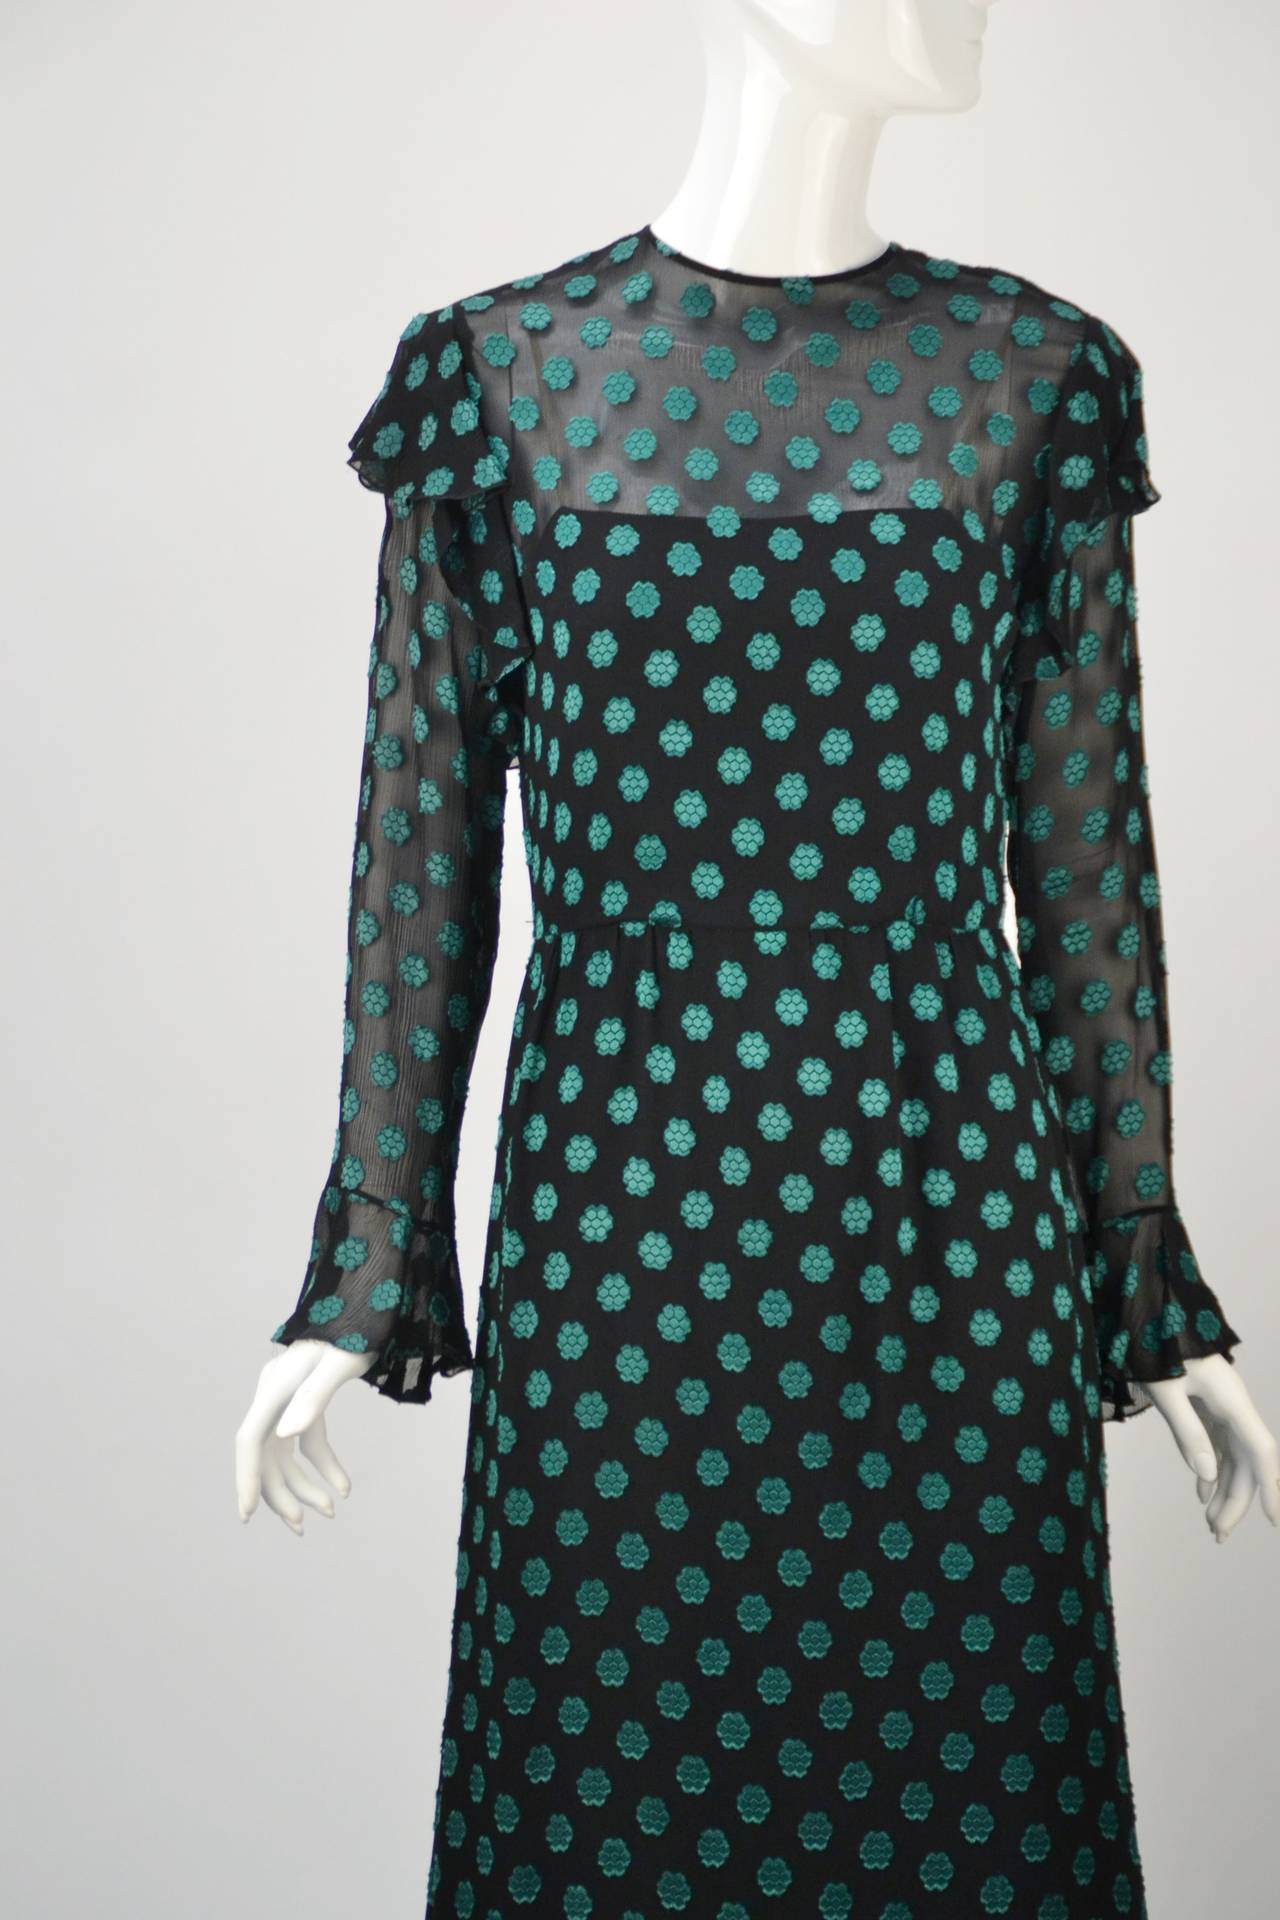 1980s Christian Dior Green Dress For Sale 1